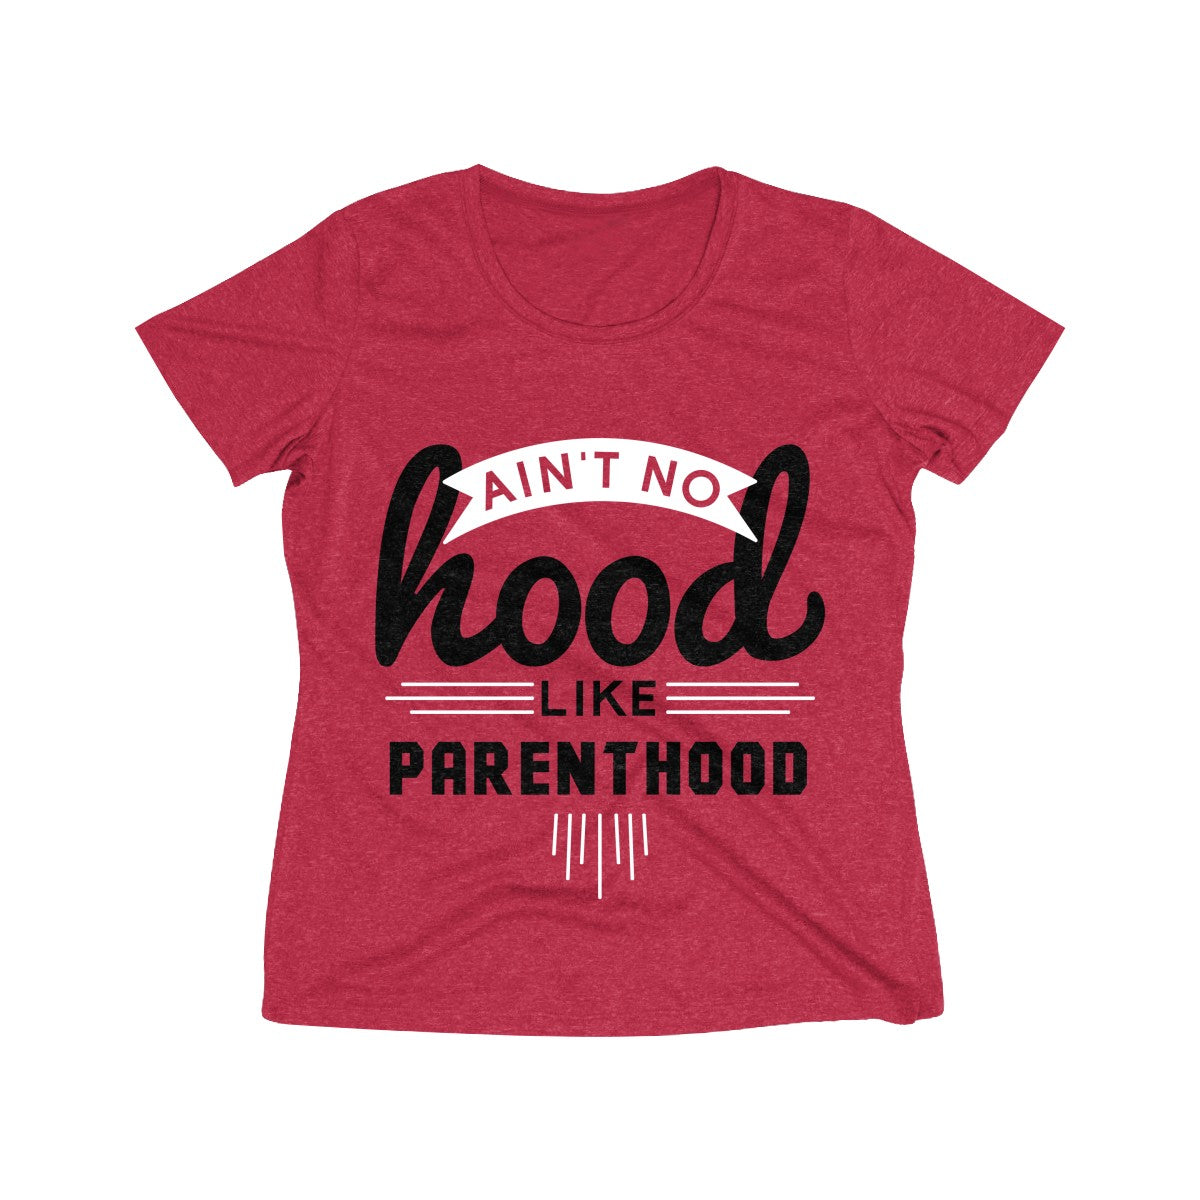 Ain't No Hood Like Parenthood T-Shirt (Adult Sizes), red